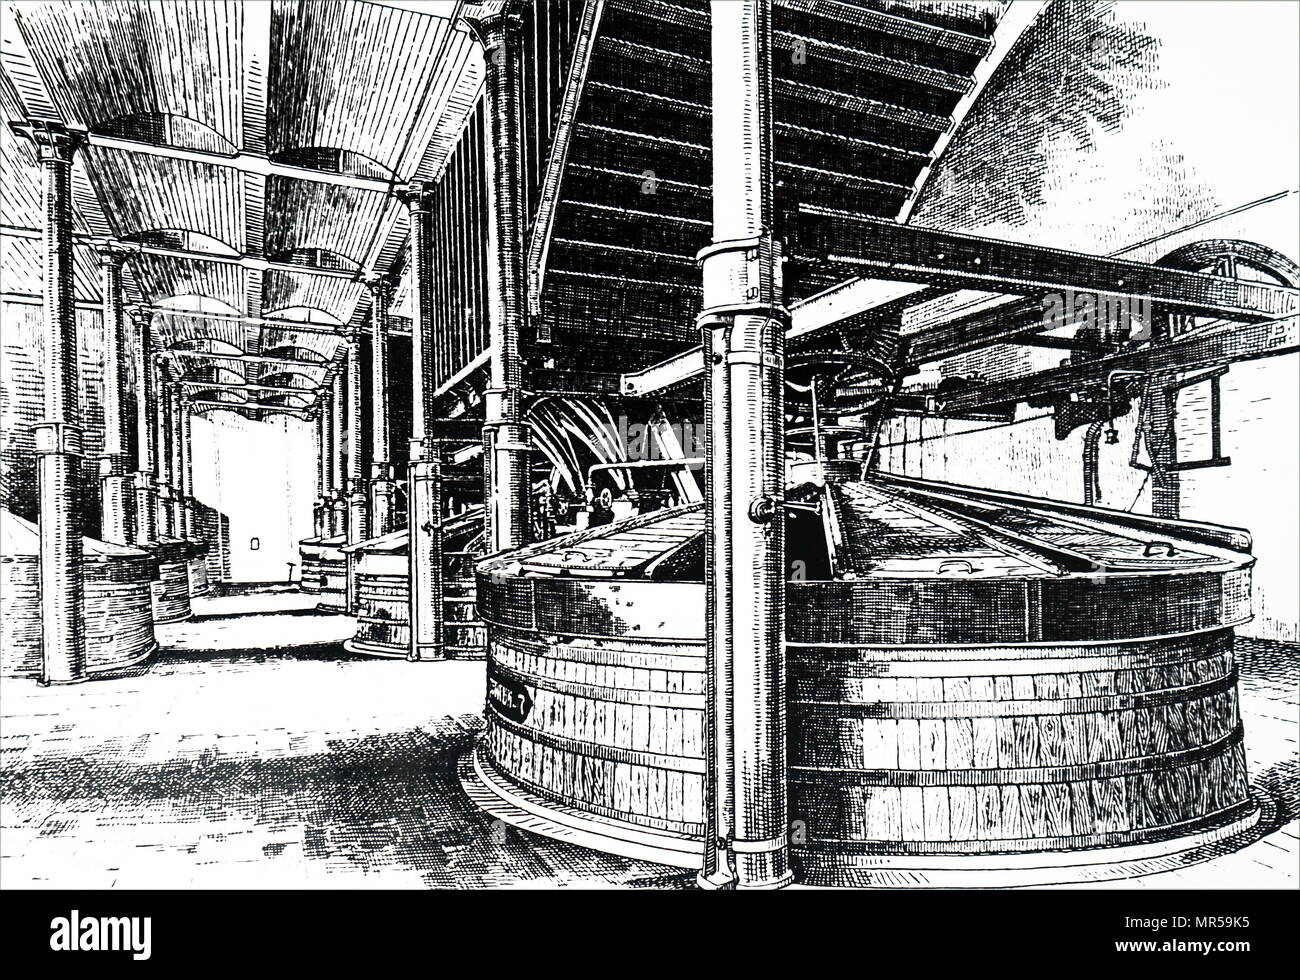 Engraving a scene from within the WM Younger & Co., Holyrood Brewery - the mashing stage, where malt and water were thoroughly mixed together. Dated 19th century - Stock Image